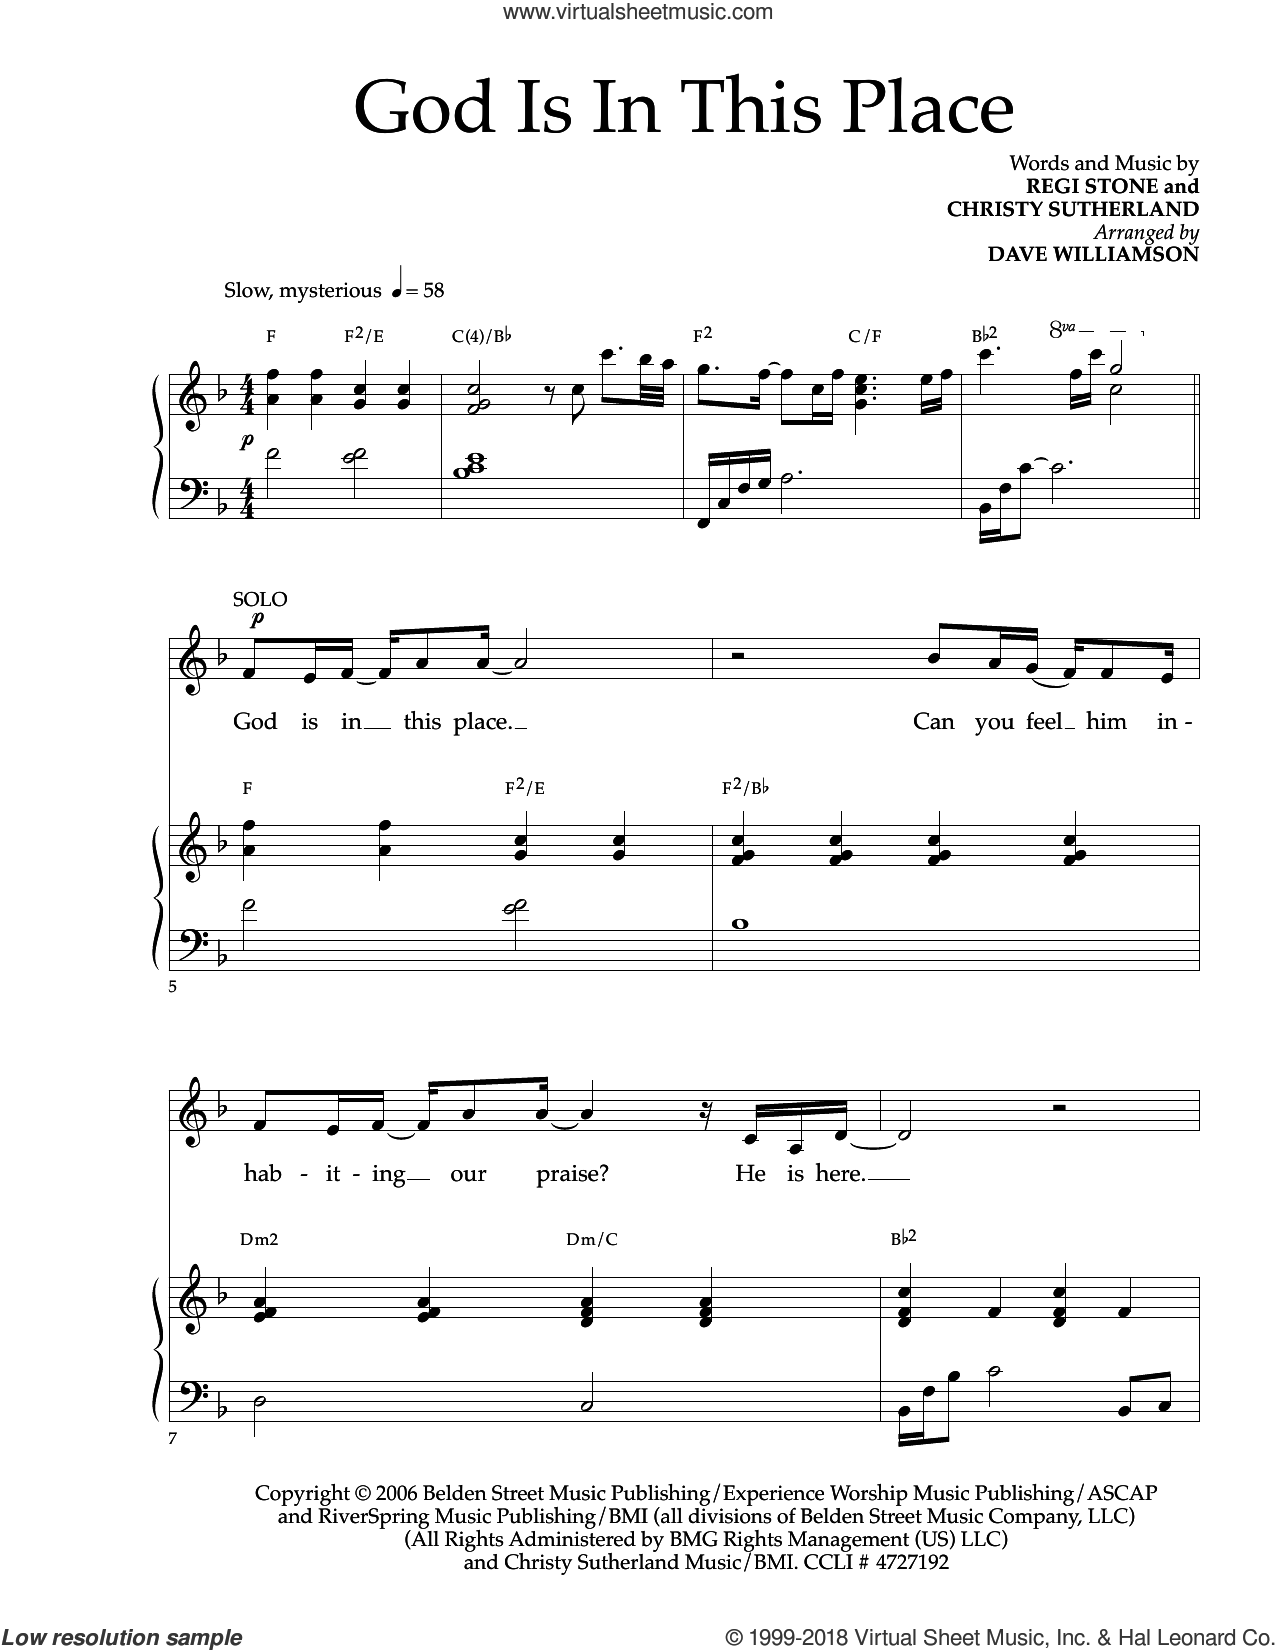 God Is In This Place sheet music for choir and piano (SATB) by Christy Sutherland